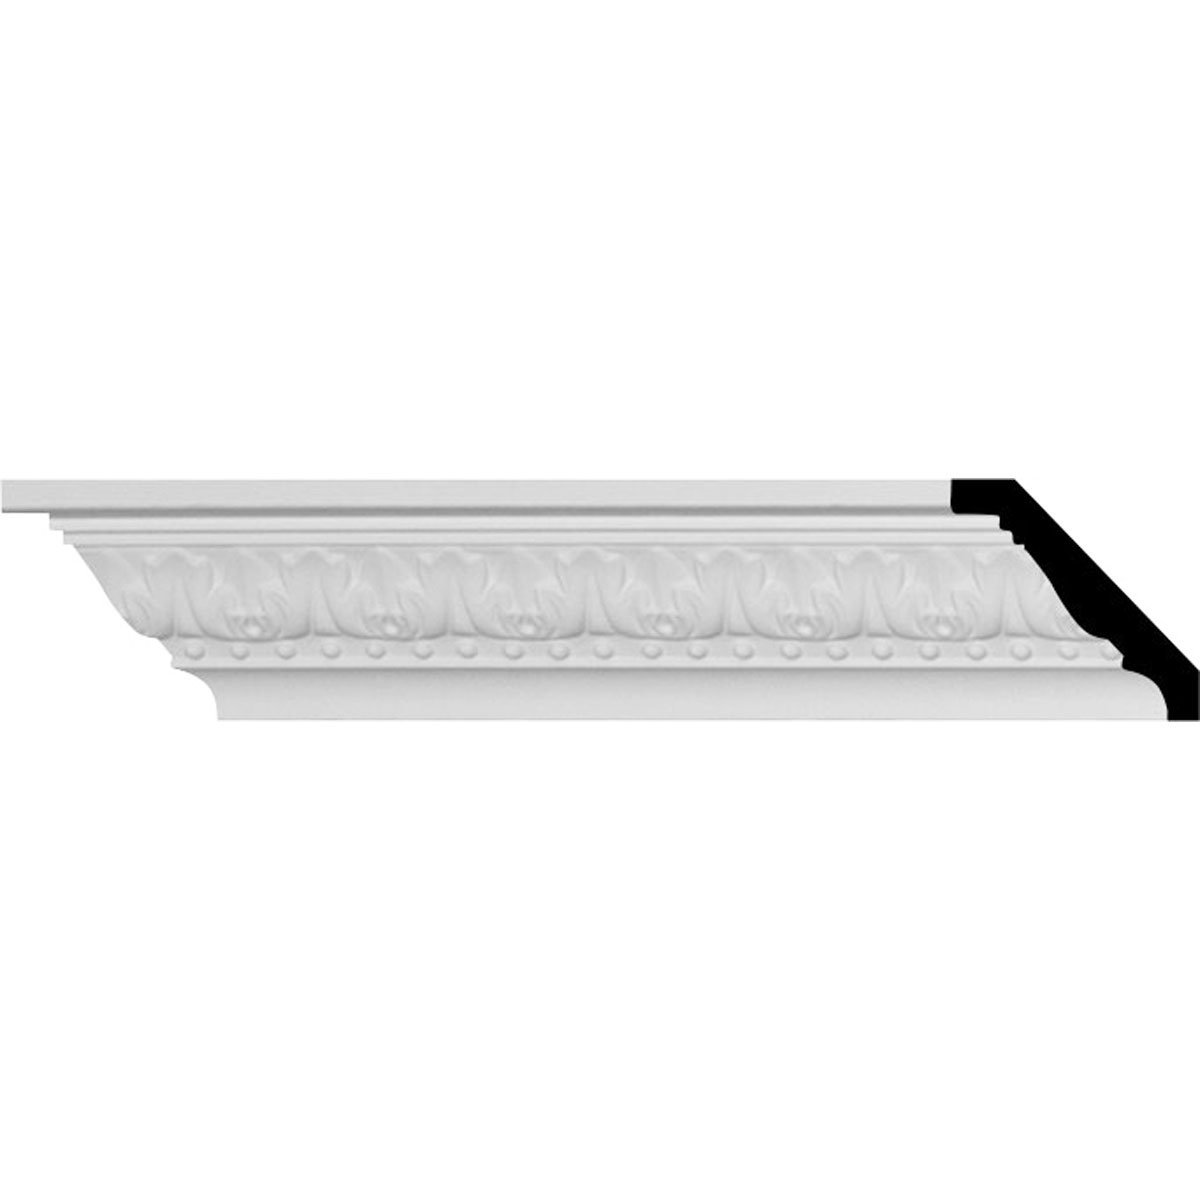 2 3/8''H x 2 3/8''P x 3 1/4''F x 94 1/2''L, (1 1/2'' Repeat), Nadia Crown Moulding (12-Pack) by Ekena Millwork